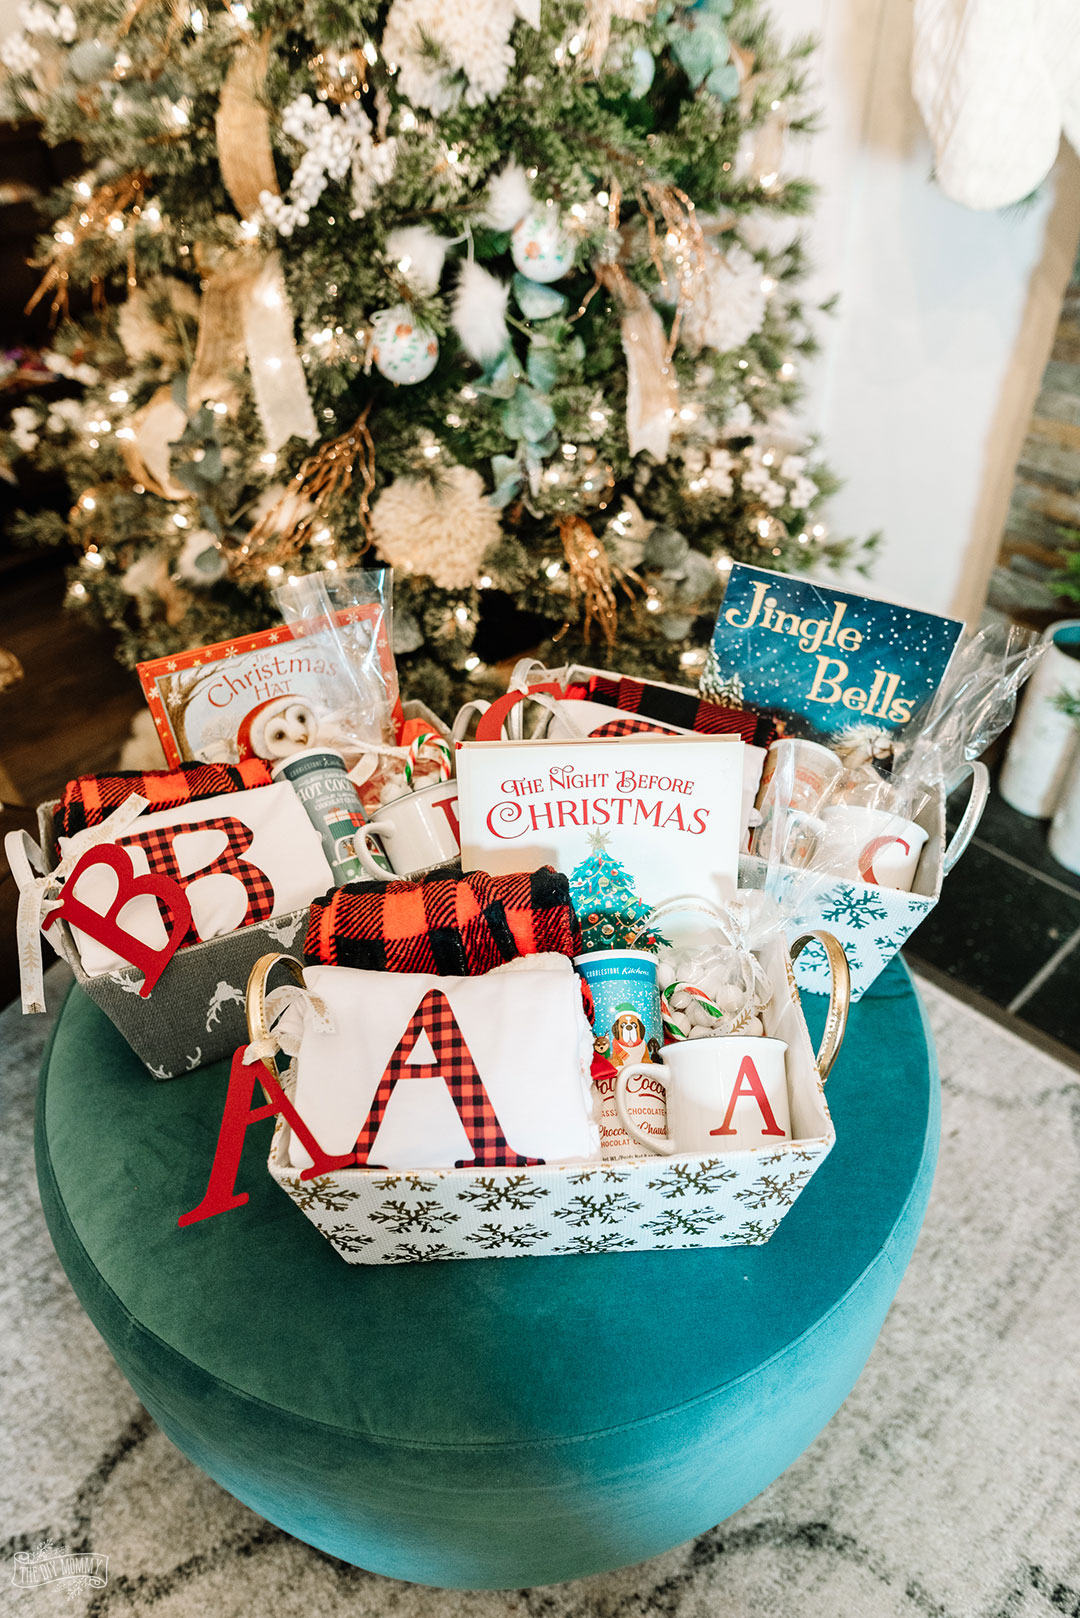 Learn how to make a personalized Christmas Eve box, what goes in a Christmas Eve box, and why you should do it